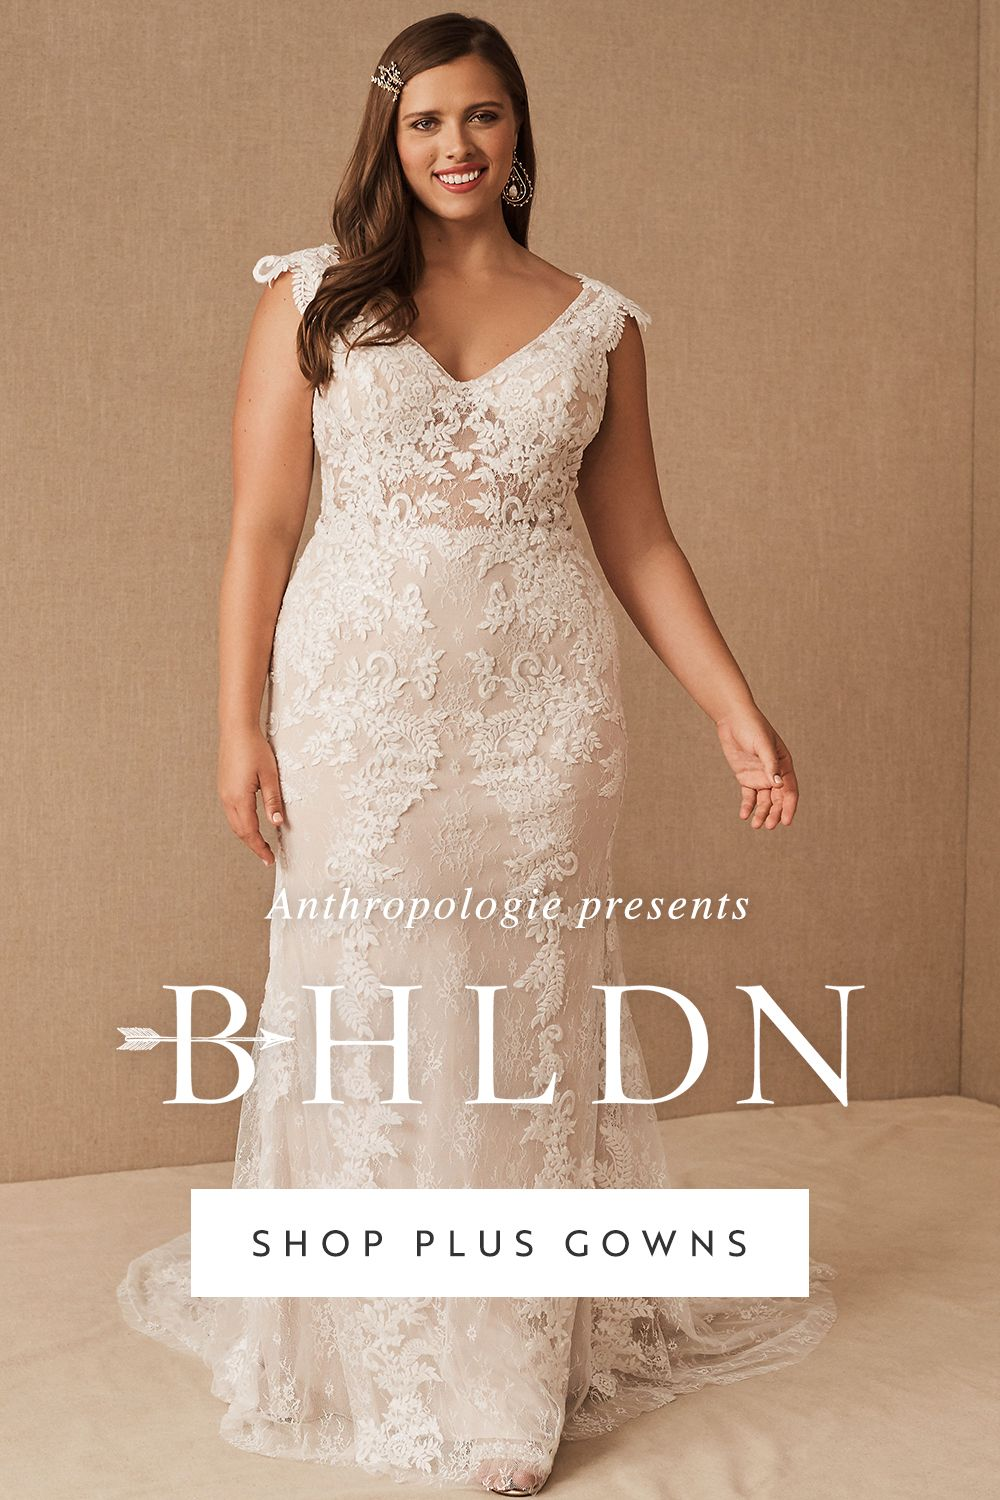 Plus Gowns Have Arrived In 2020 Boho Wedding Dress Lace Stunning Wedding Dresses Plus Size Wedding